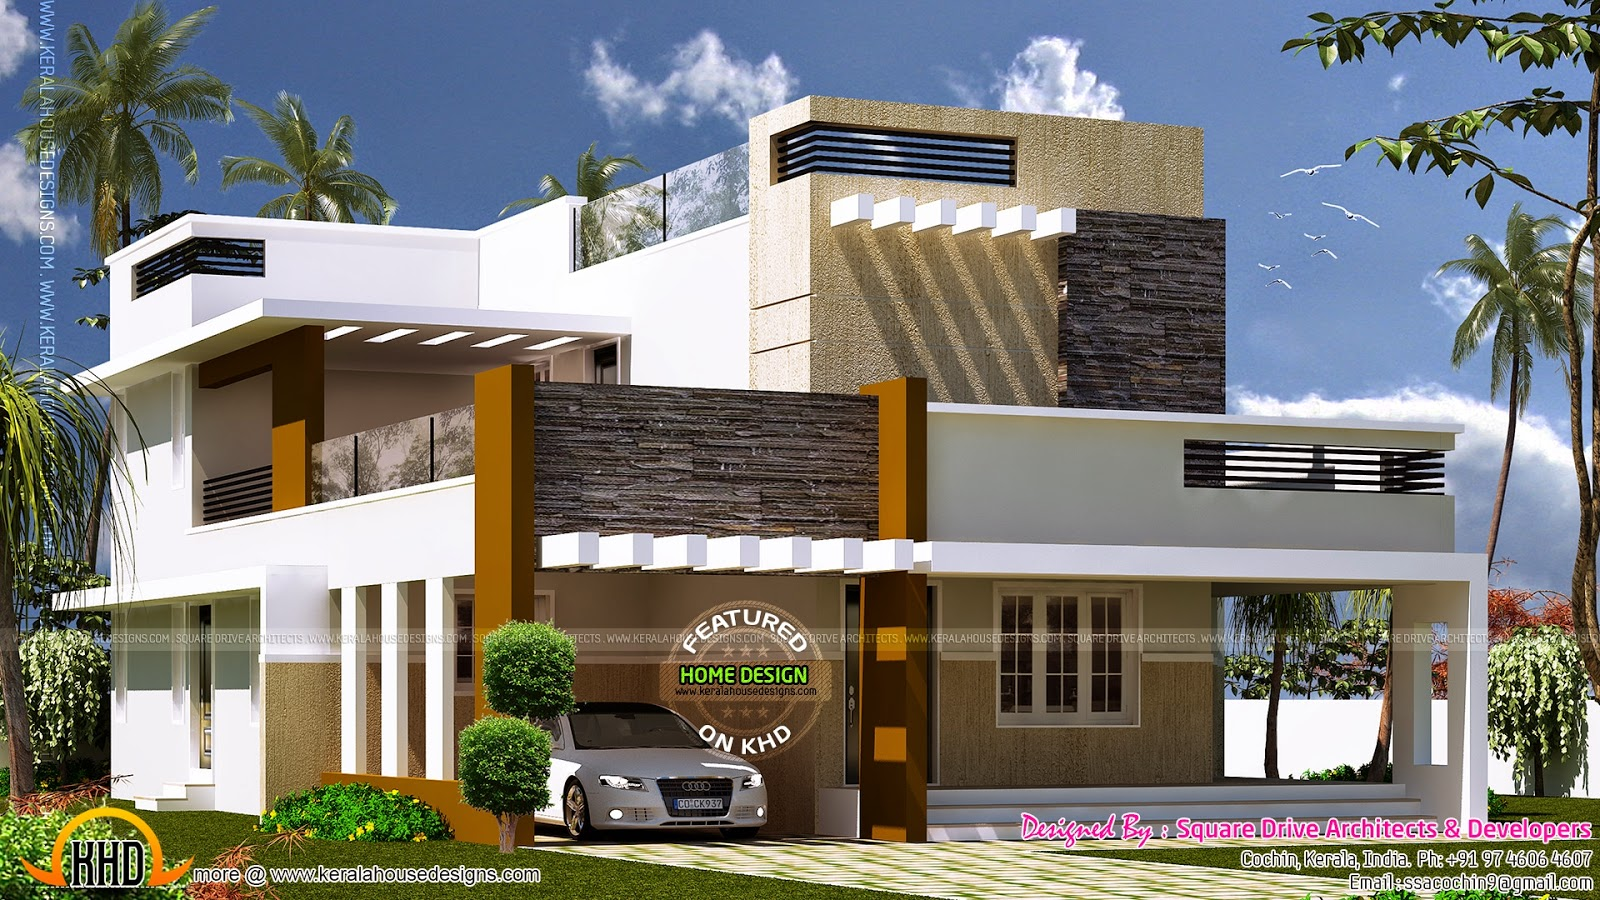 Exterior design of contemporary villa kerala home design for Villa design plan india